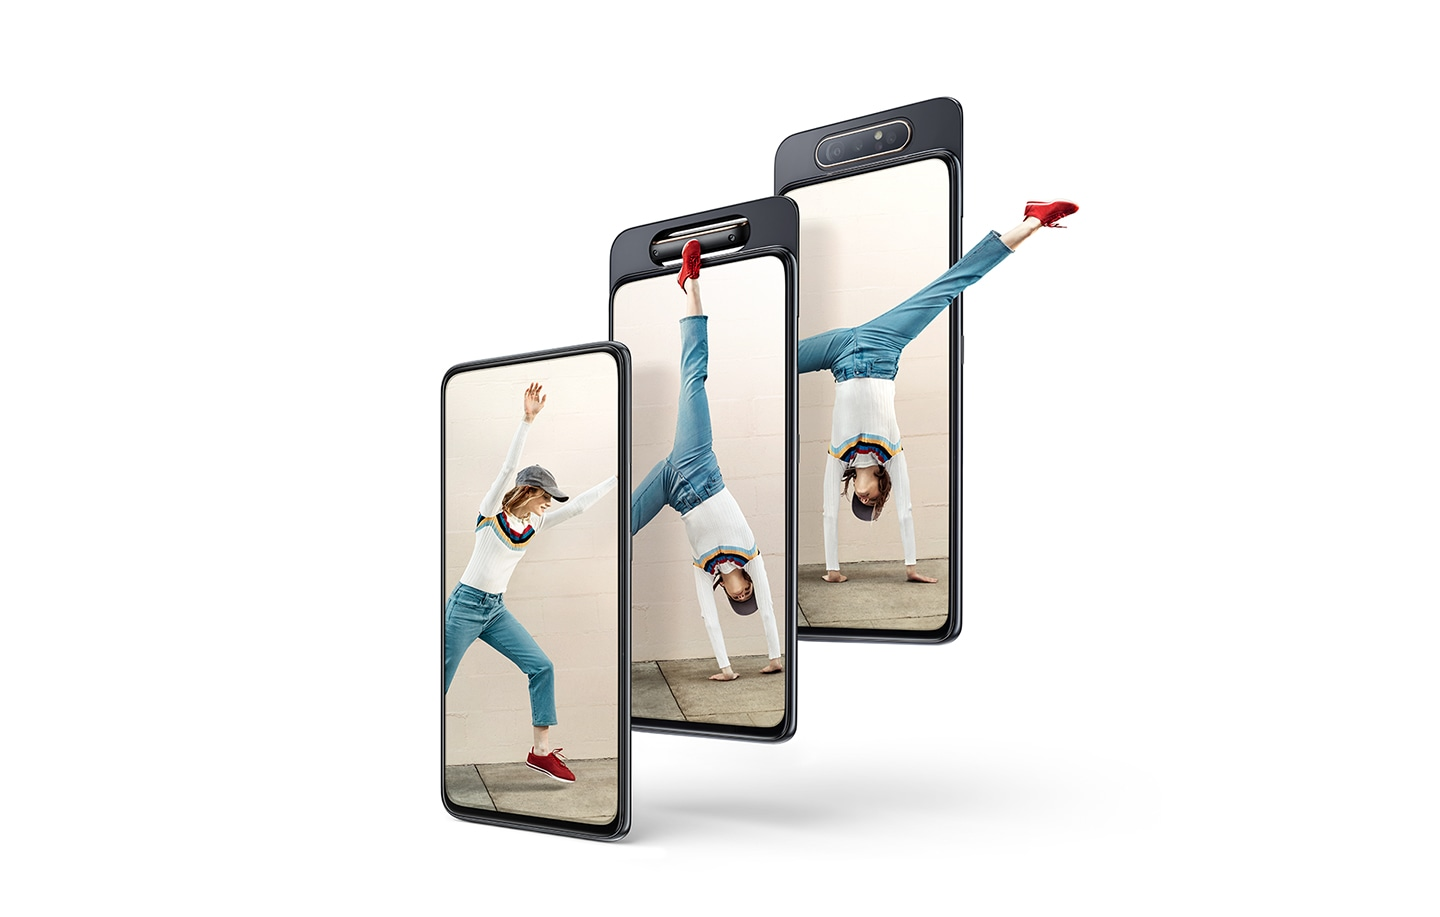 Samsung Galaxy A80 with cinematic visual experience